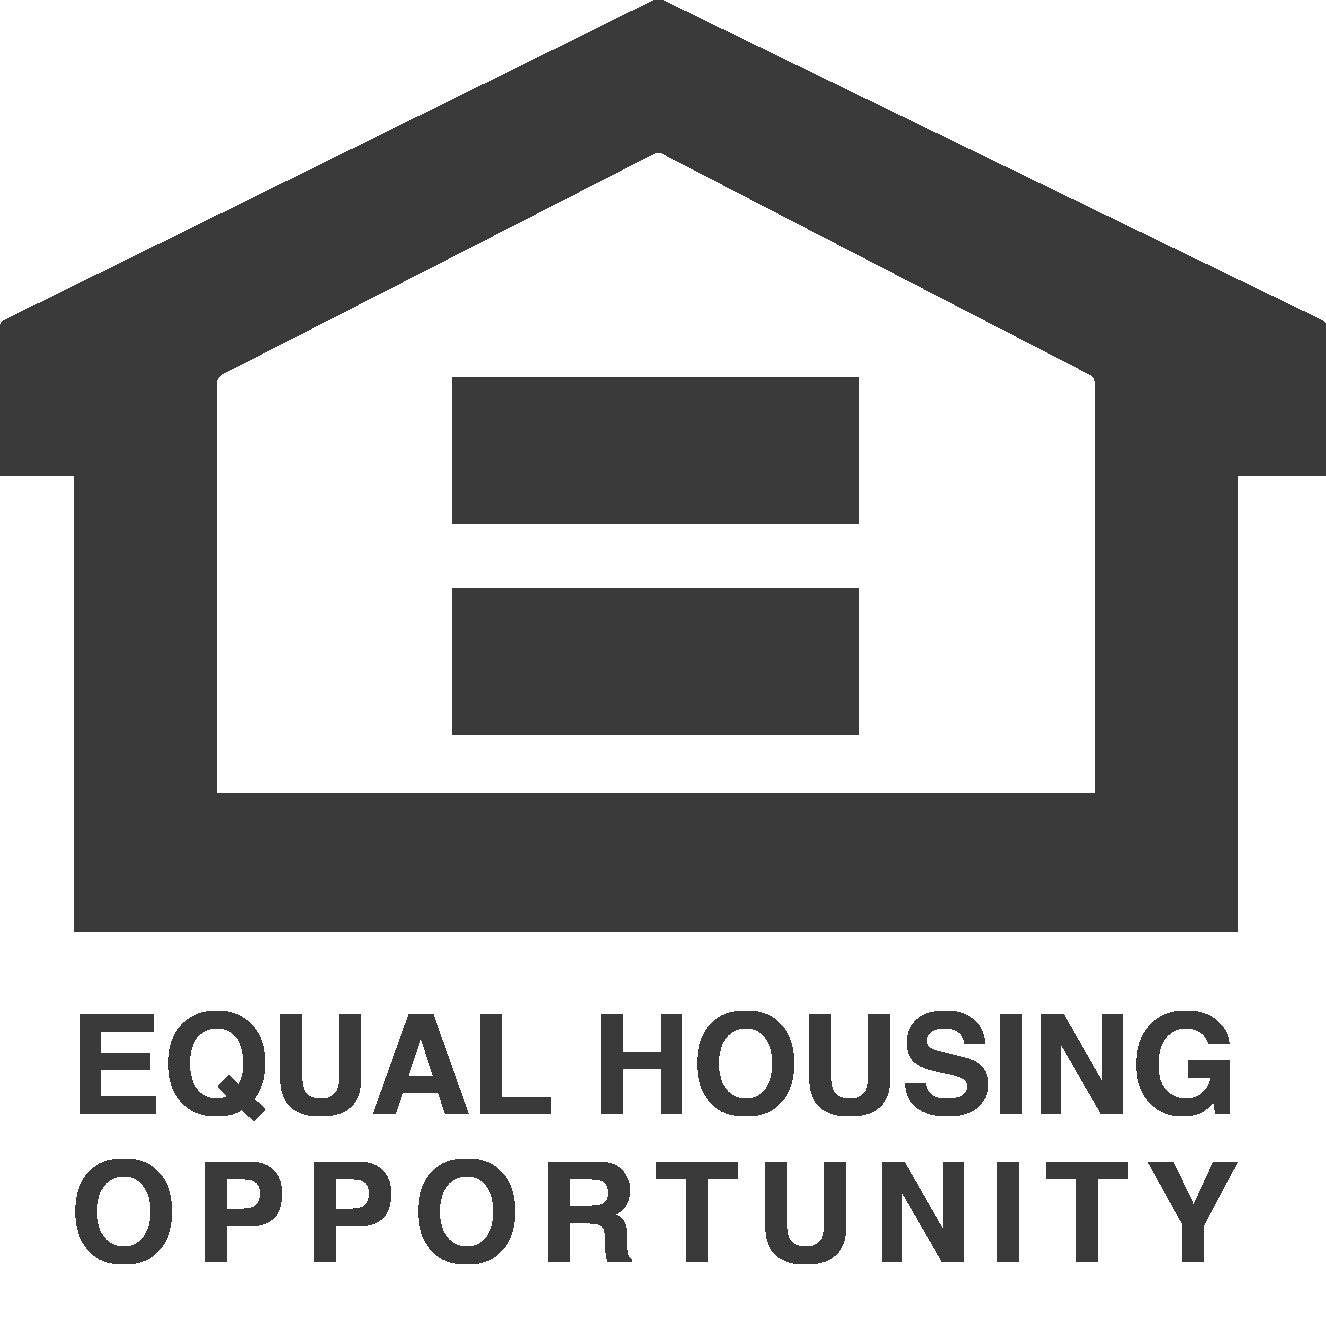 We do business in accordance with the Federal Fair Housing Law and Equal Opportunity Act.